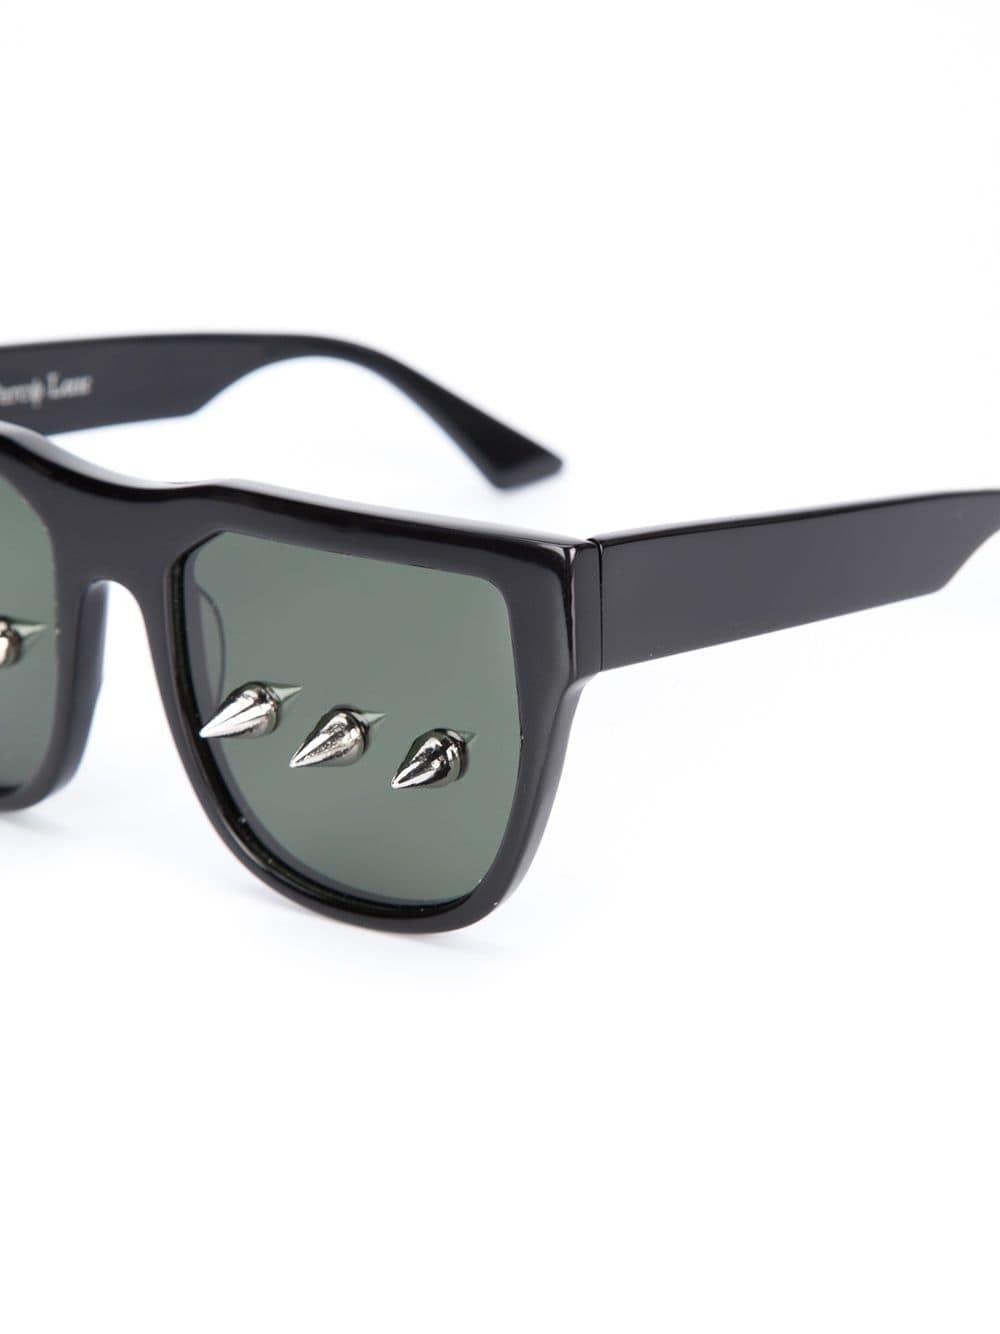 Percy Lau Studded Lens Sunglasses in Black